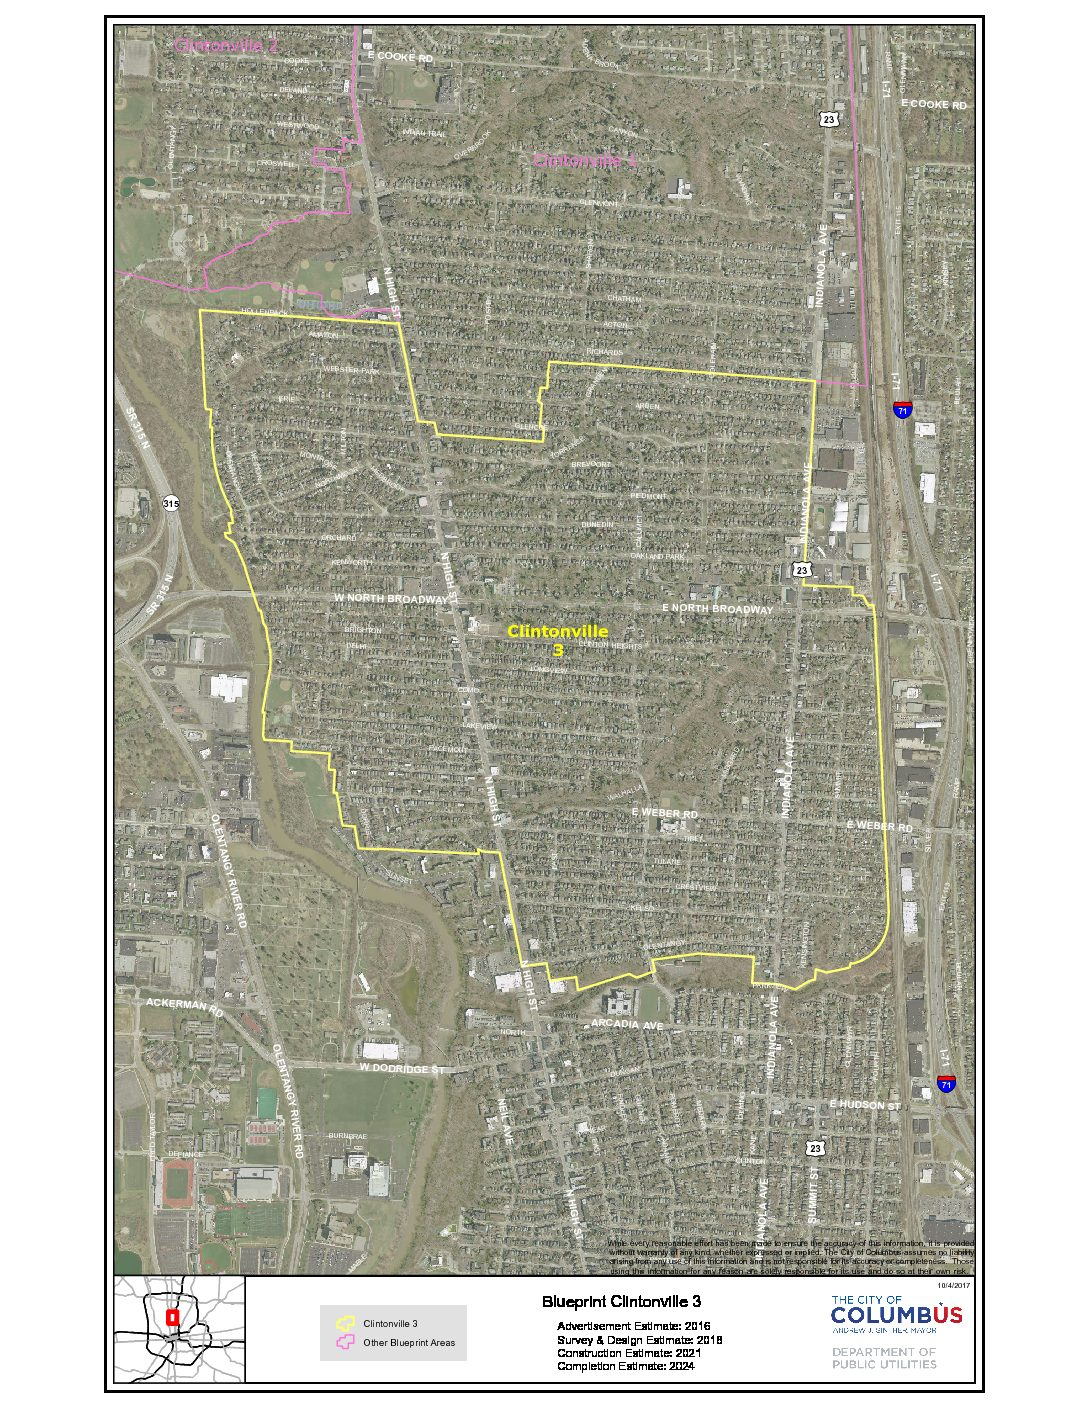 News clintonville area commission blueprint zone 3 design phase meeting postponed malvernweather Choice Image